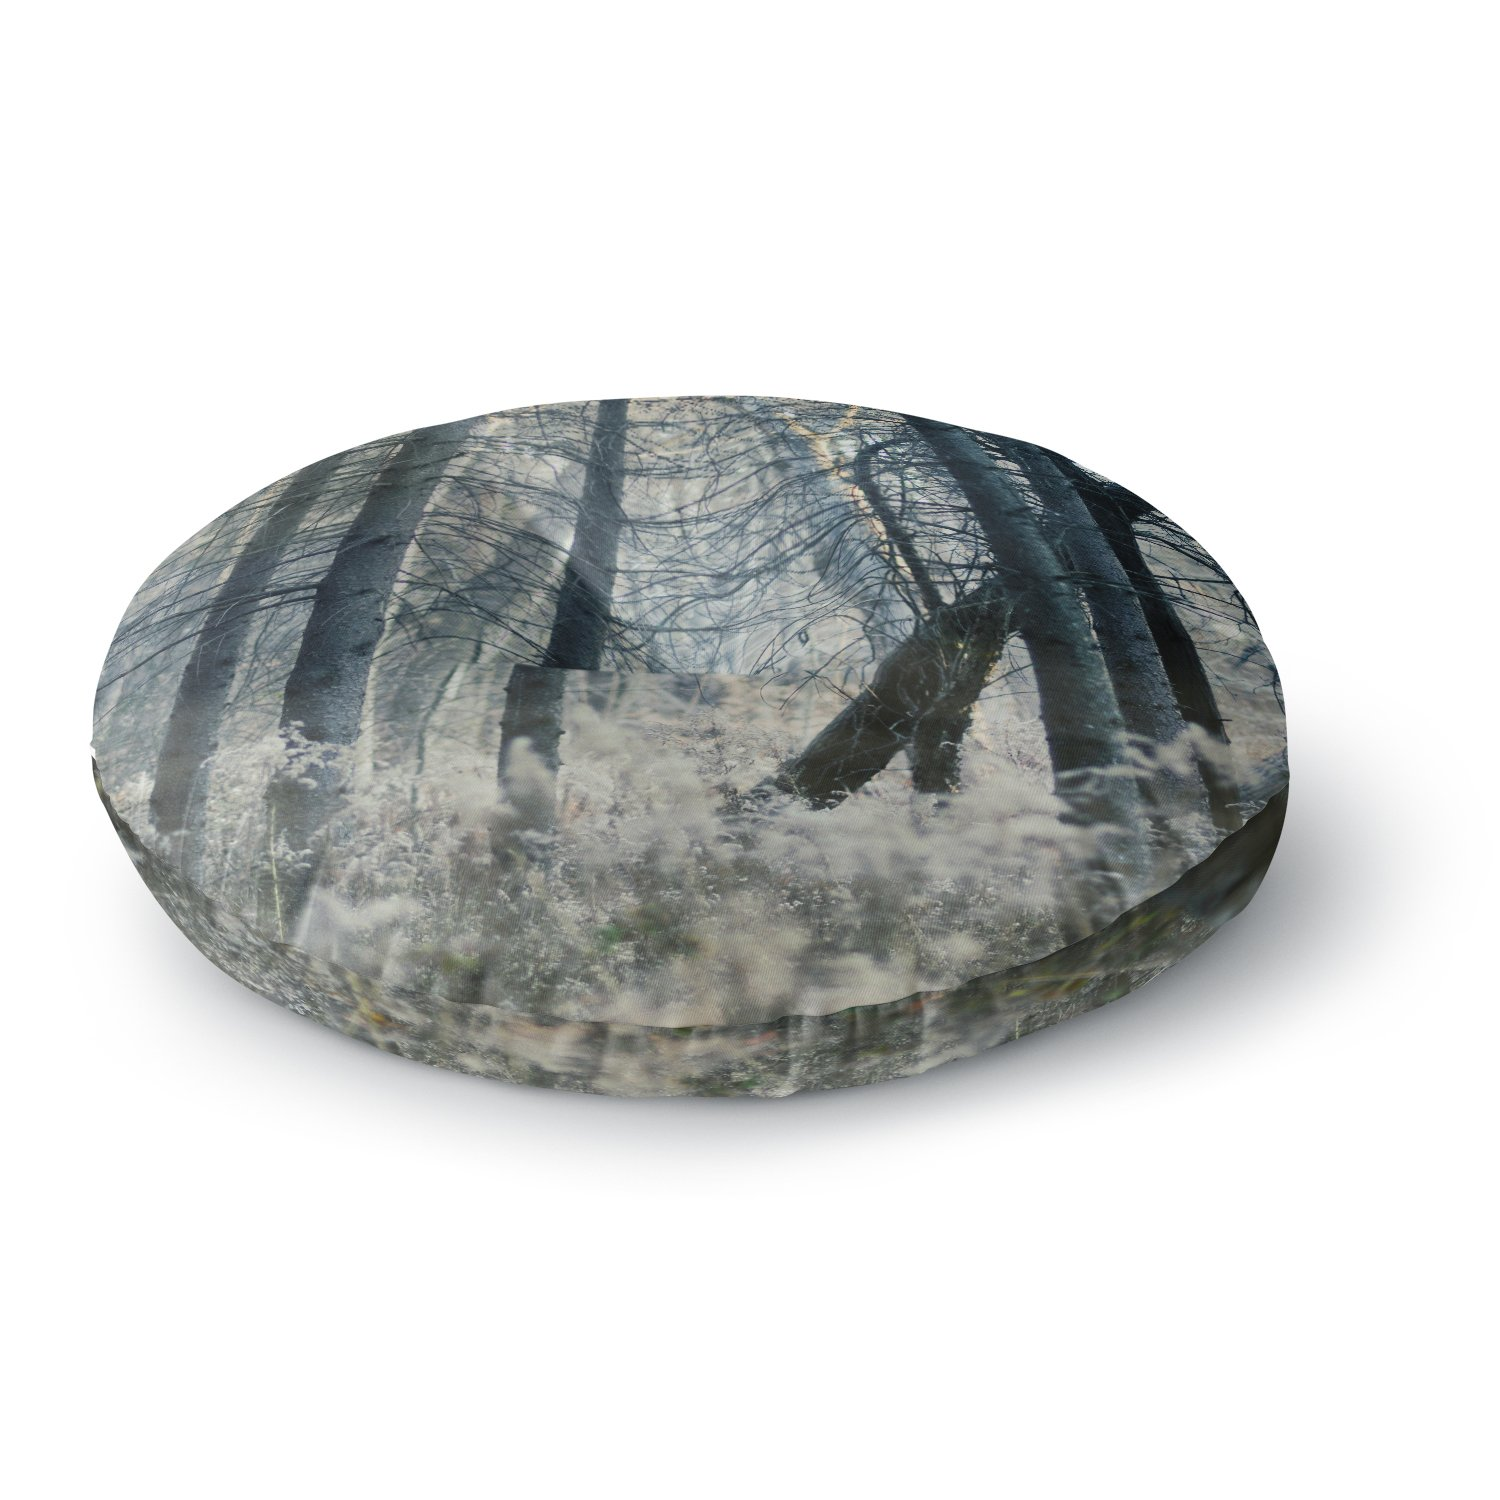 KESS InHouse Chelsea Victoria Out of the Woods Nature Photography Round Floor Pillow, 26''